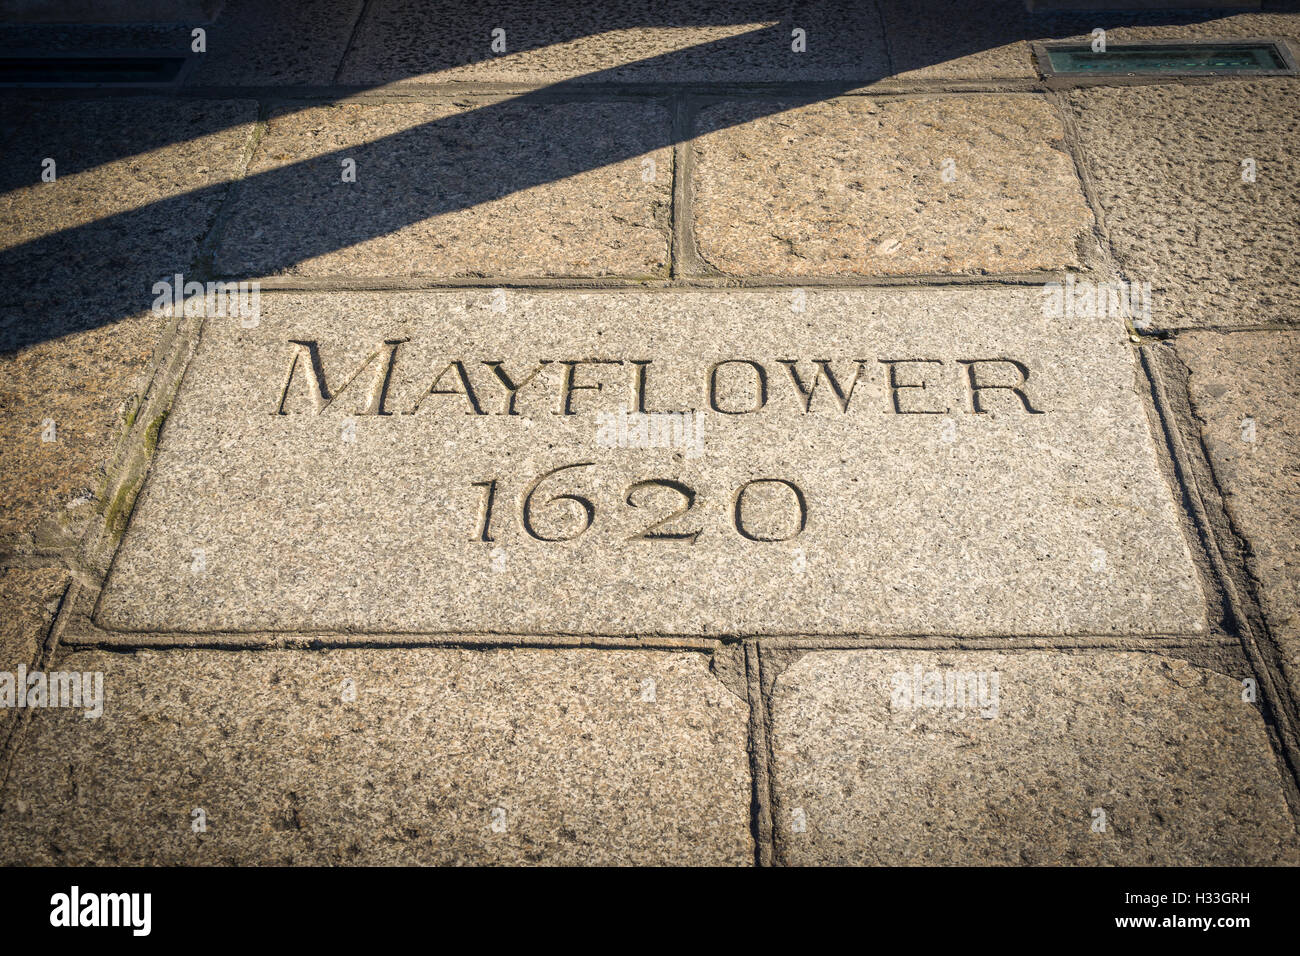 Mayflower 1620 Stockbild